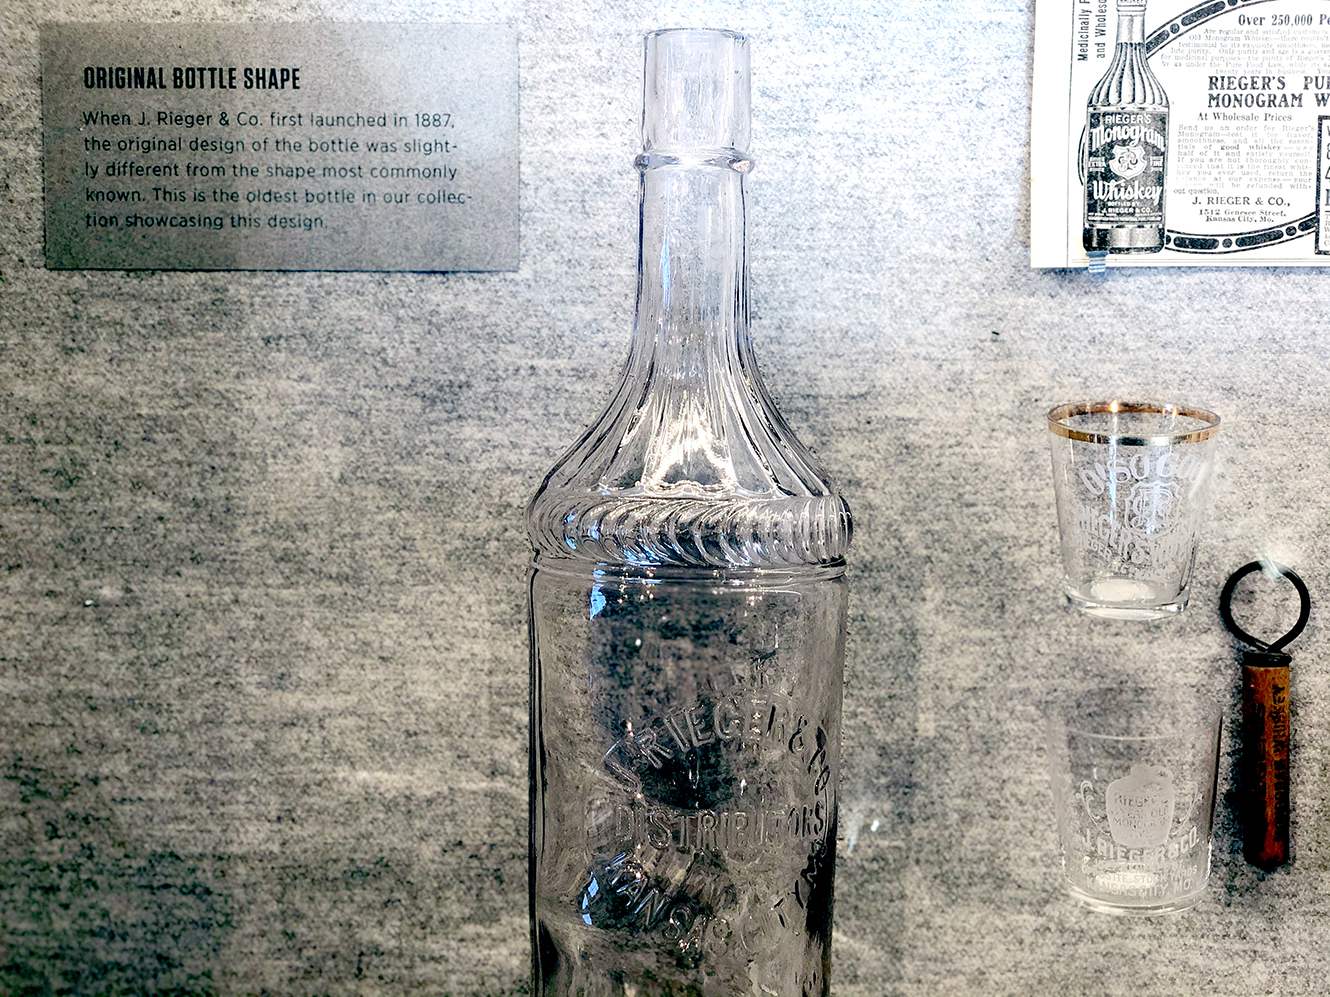 Original bottle for J. Rieger's whiskey in the 1900s